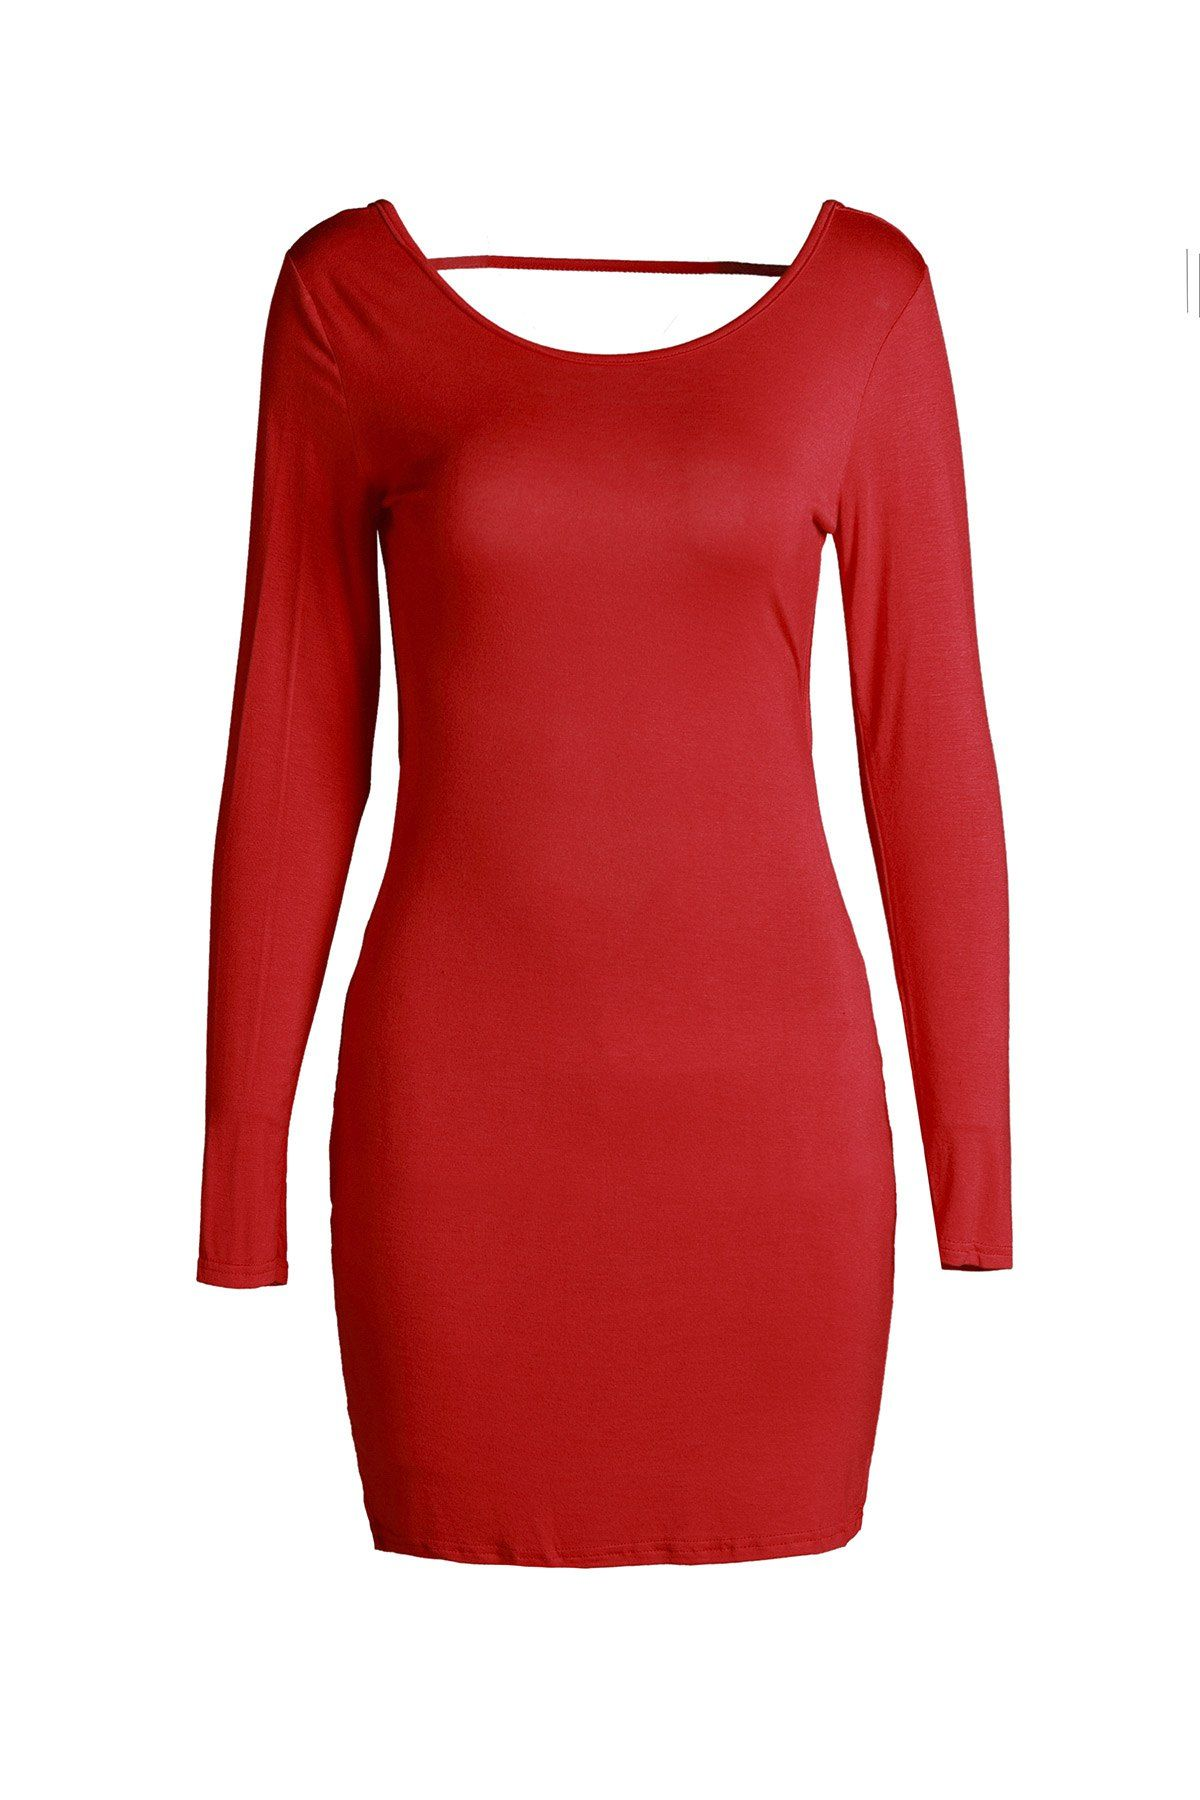 Attractive red long sleeve bodycon backless dress for women